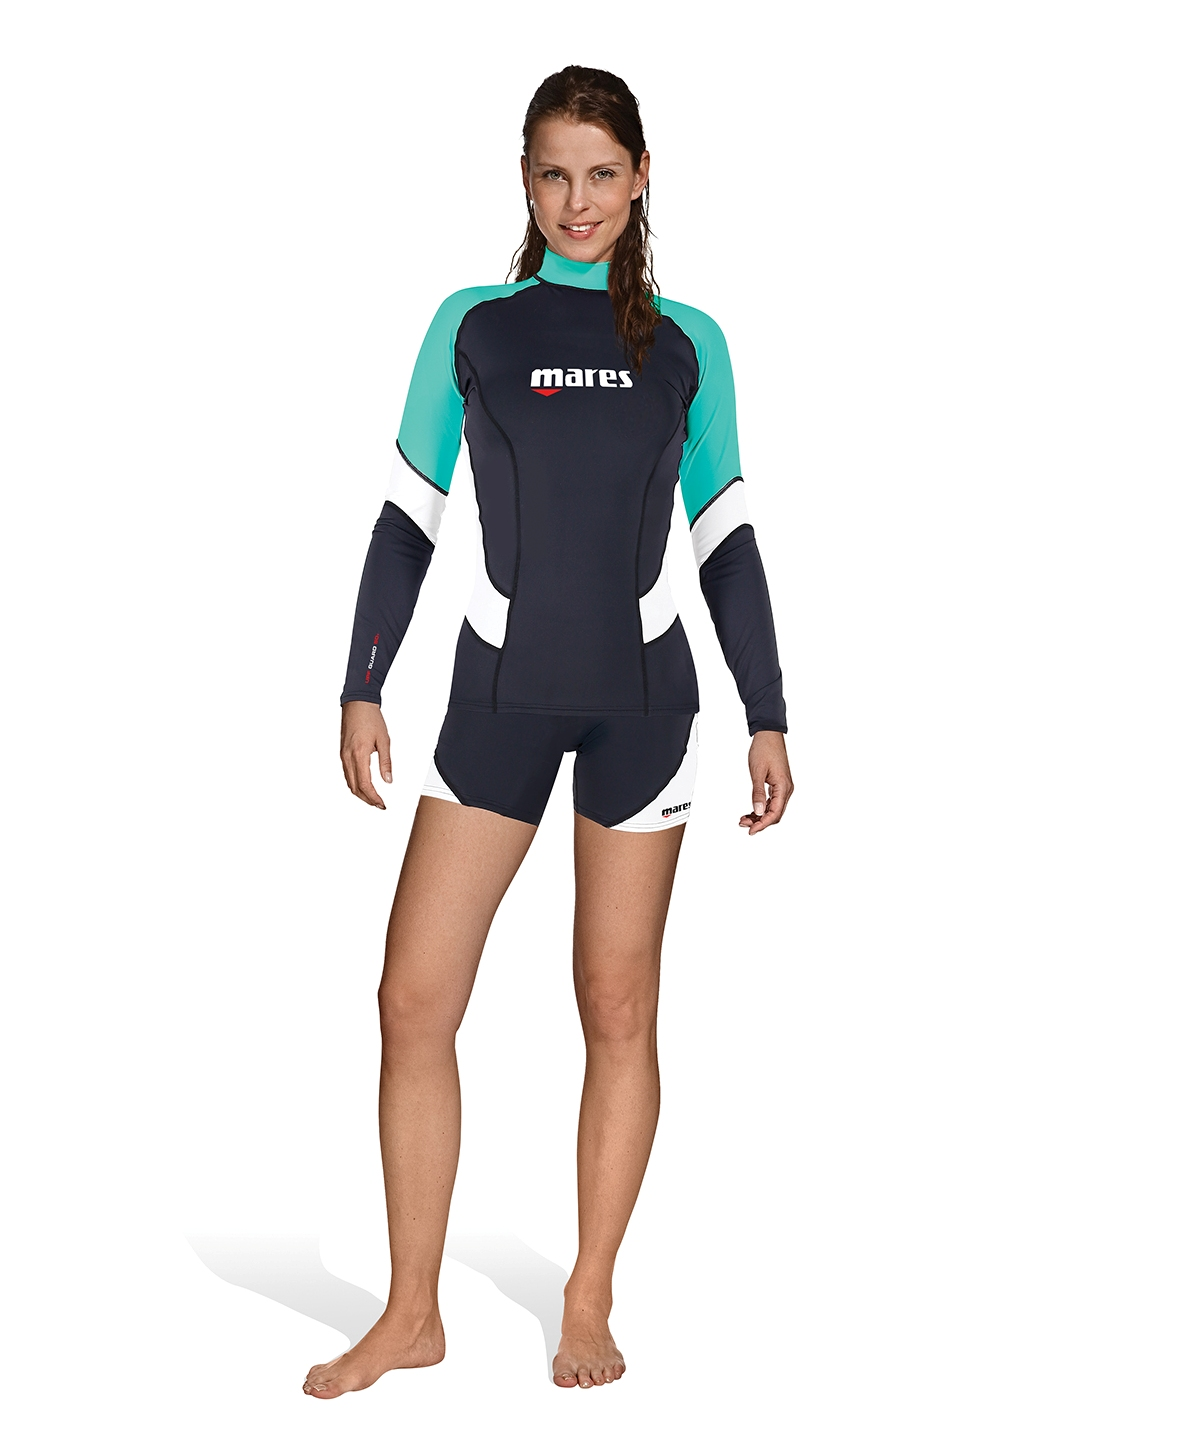 MARES - Rash Guard Long Sleeve SheDives Damen